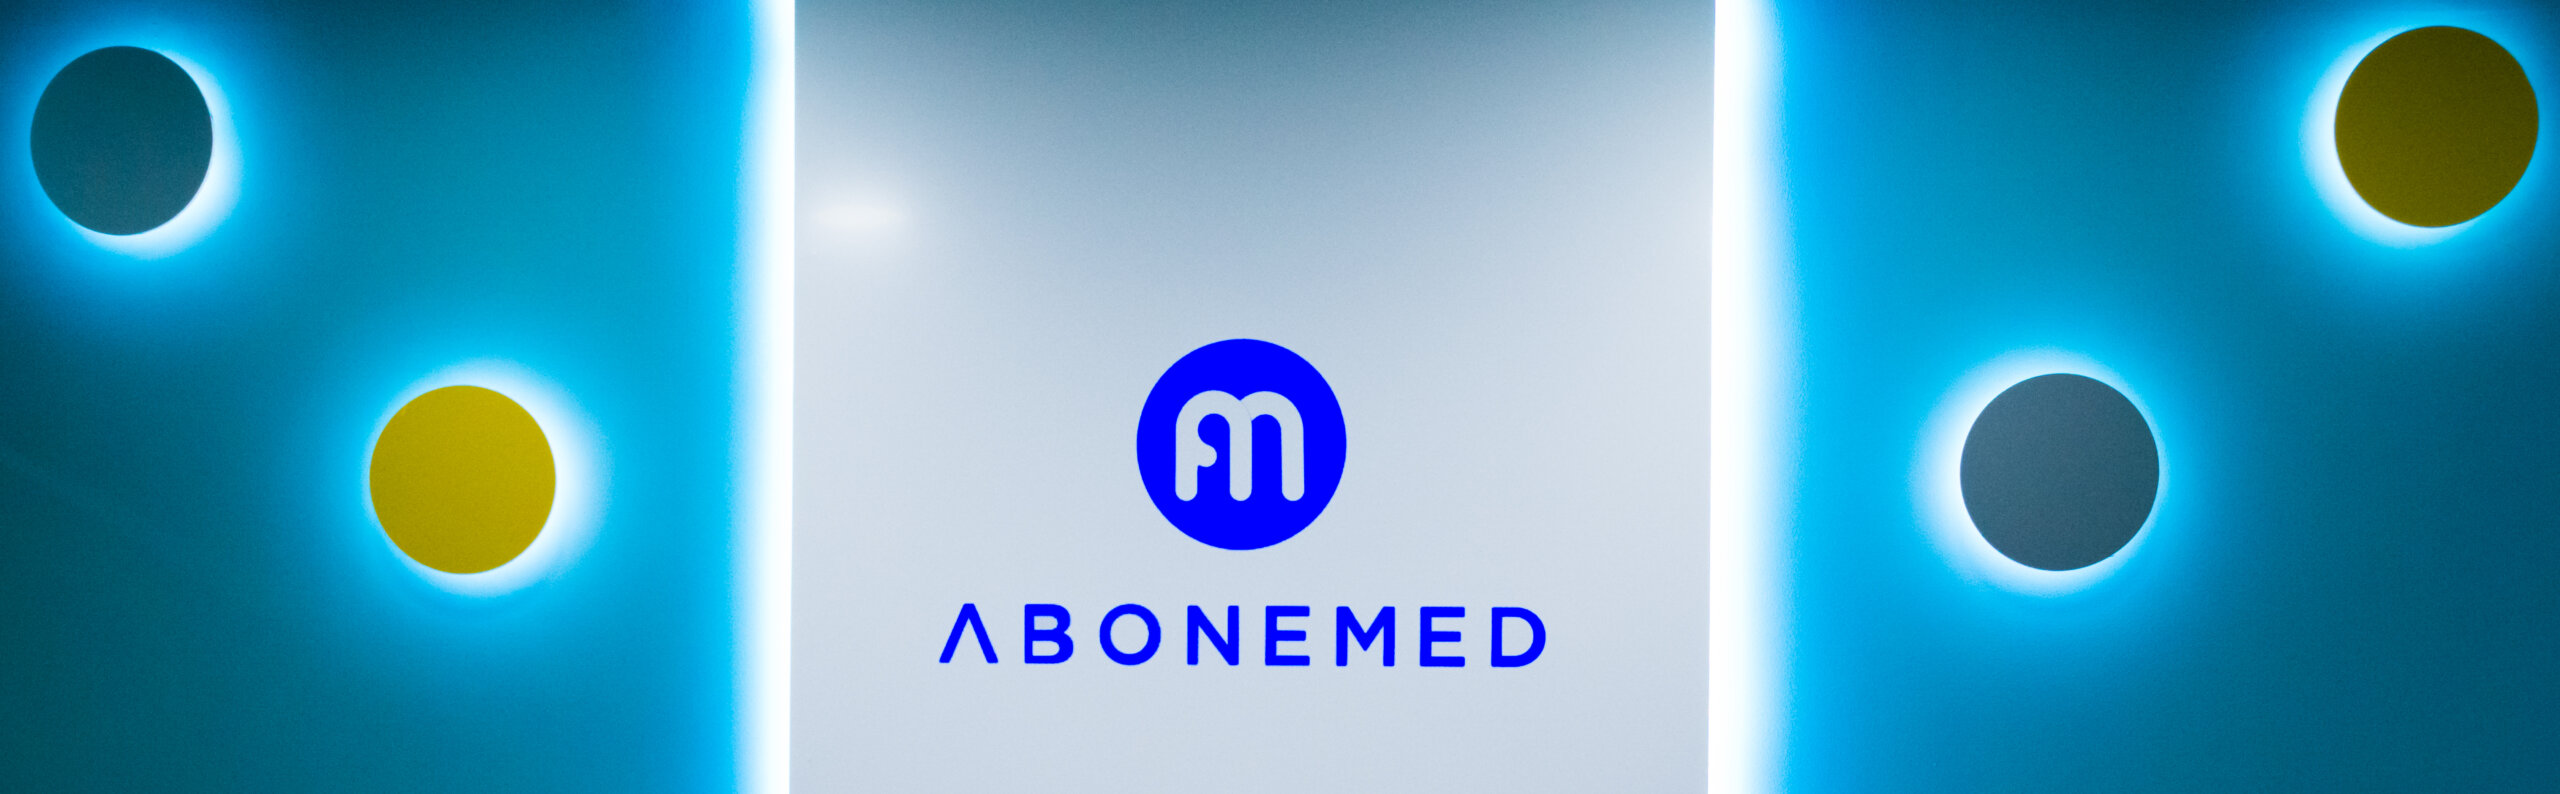 Abonemed | Medical Equipment Trading Company in Dubai